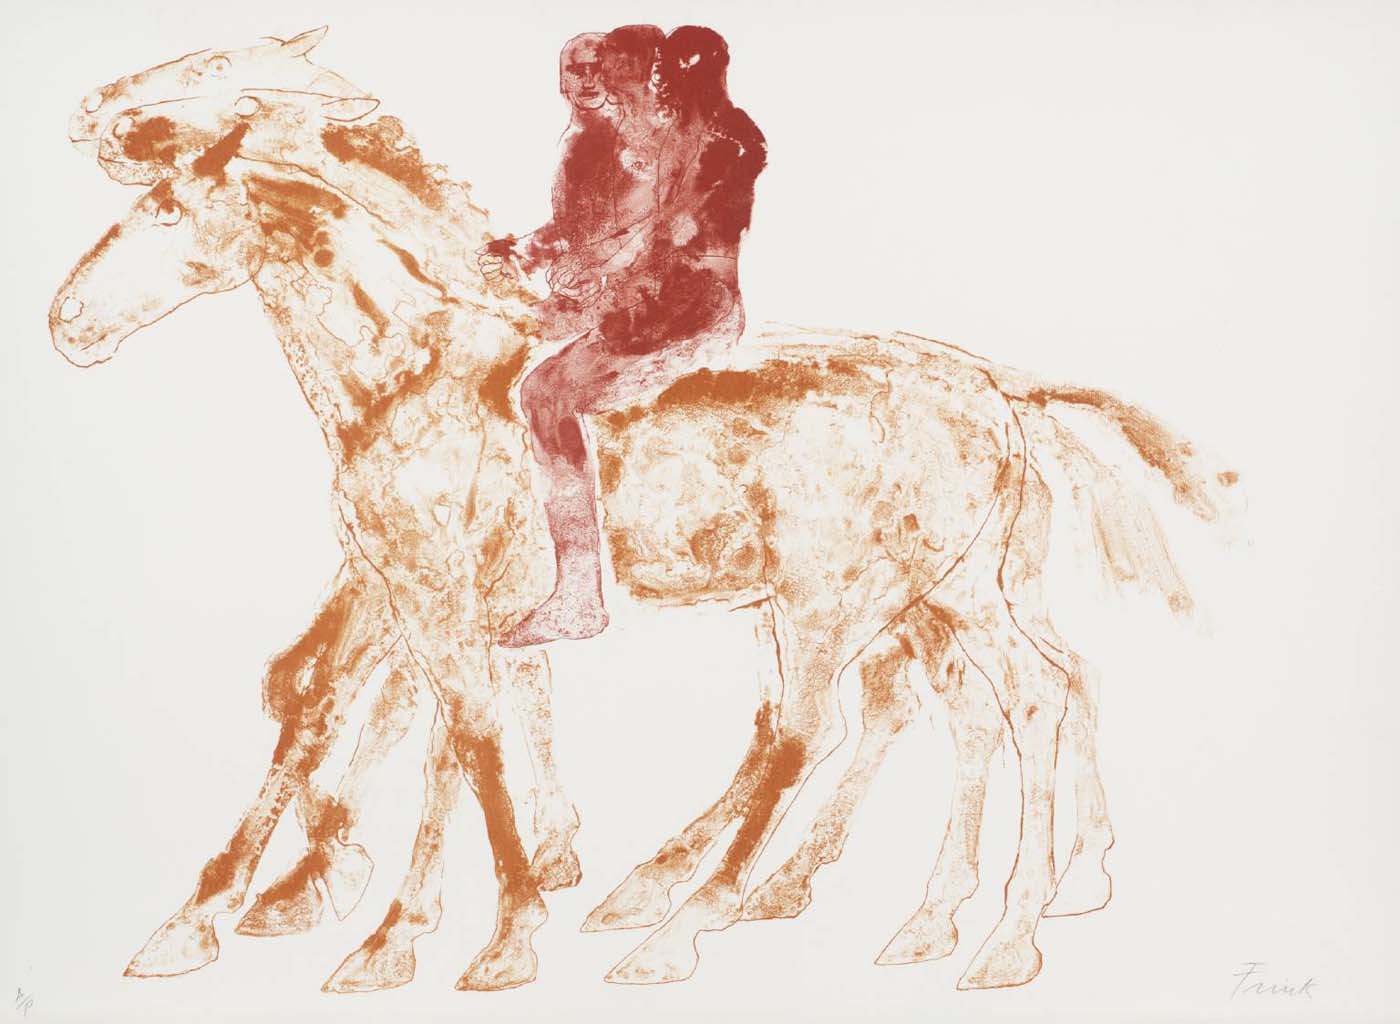 a sketch of three people riding on horseback